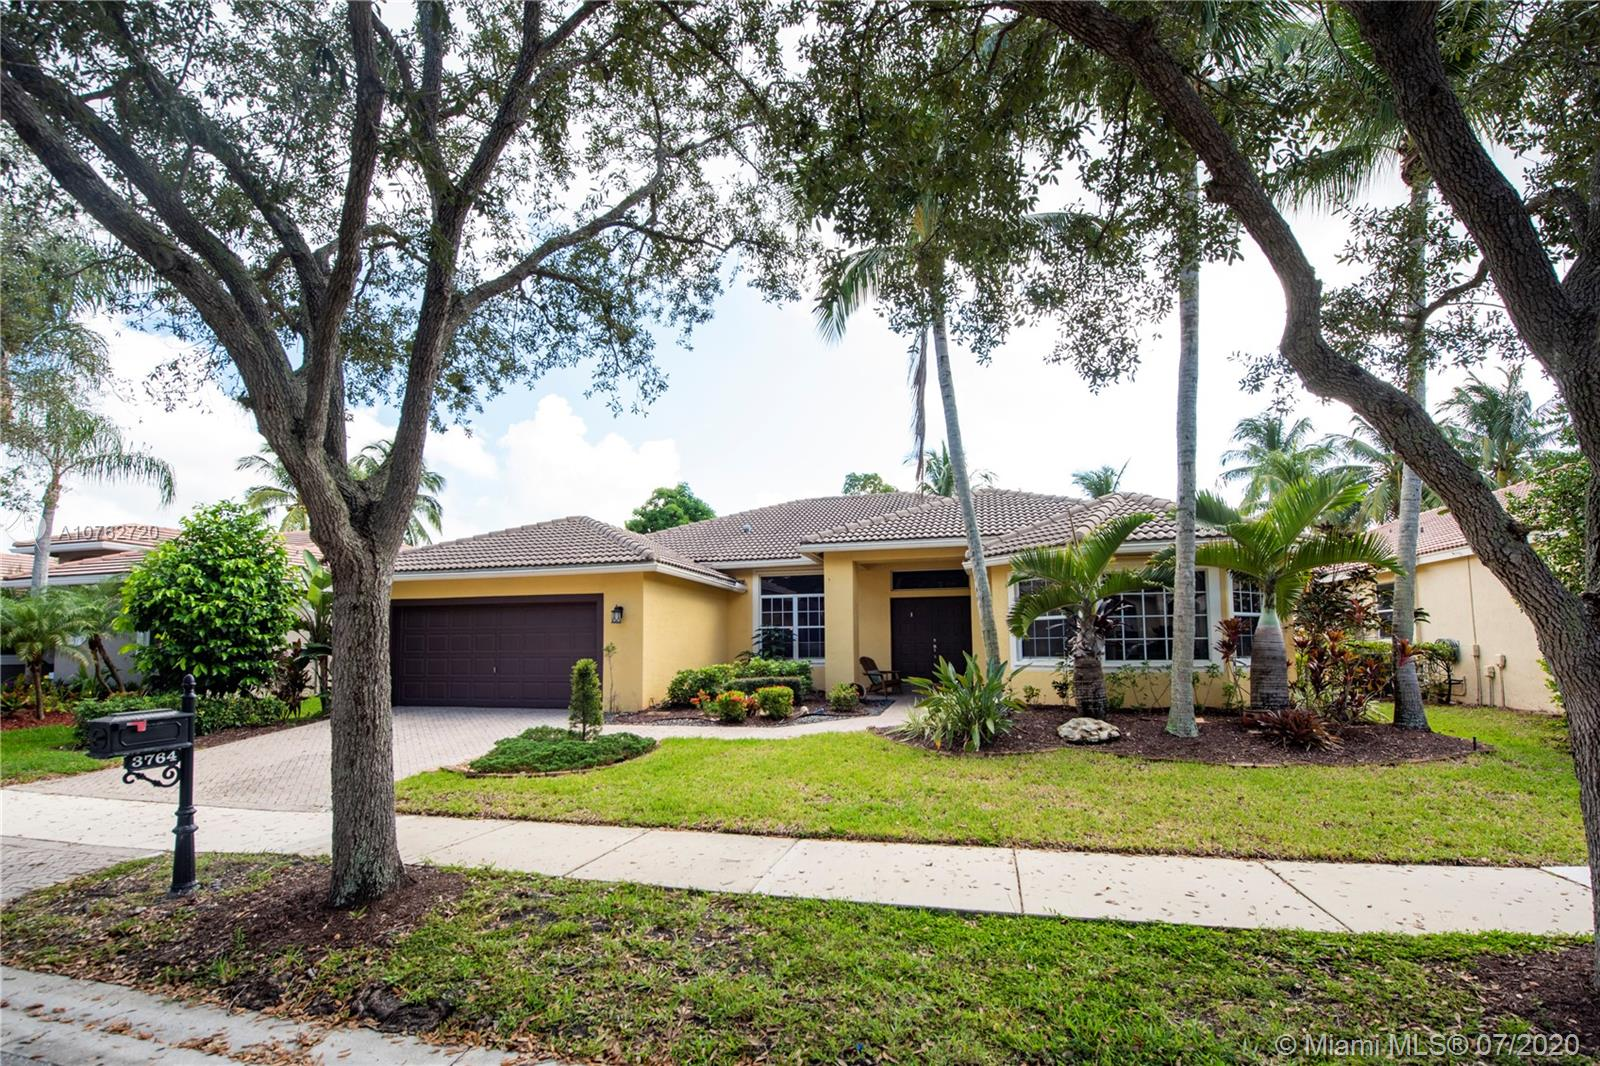 """Amazing opportunity to own a one story single family 5 bedroom 3 bathroom pool home in the desirable neighborhood of """"The Ridges"""" in Weston which features a guard gated entrance, walking paths, tiki huts, community pool, playground, basketball and ball fields!  Top rated schools in Weston!  This home is a """"must see"""" with a remodeled kitchen and bathrooms, tiled floors, wide open floor plan perfect for entertaining!  4 way split with one of the bedrooms being used as an office/den!  Lots of natural light!  Enjoy the view of the pool from the living areas and relax on the screened in patio perfect for outdoor entertaining!  Centrally located for easy access to major highway for commuting!"""